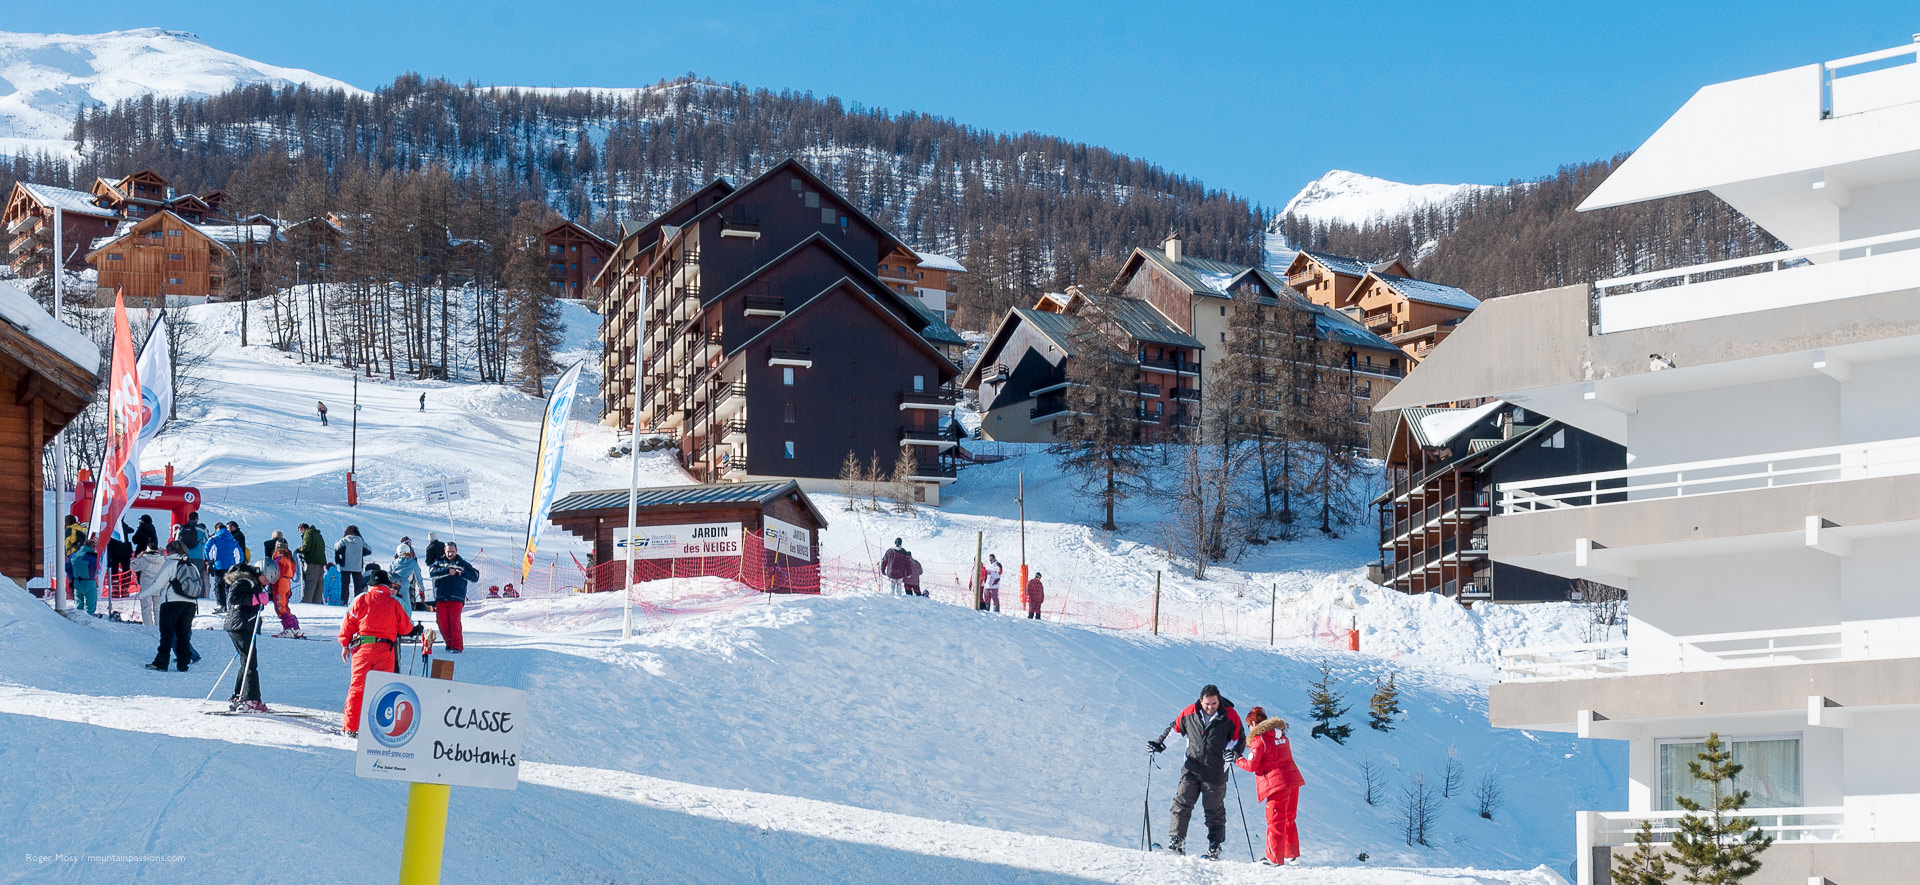 Novice skiers meeting at ski school area, with slopeside apartments in background